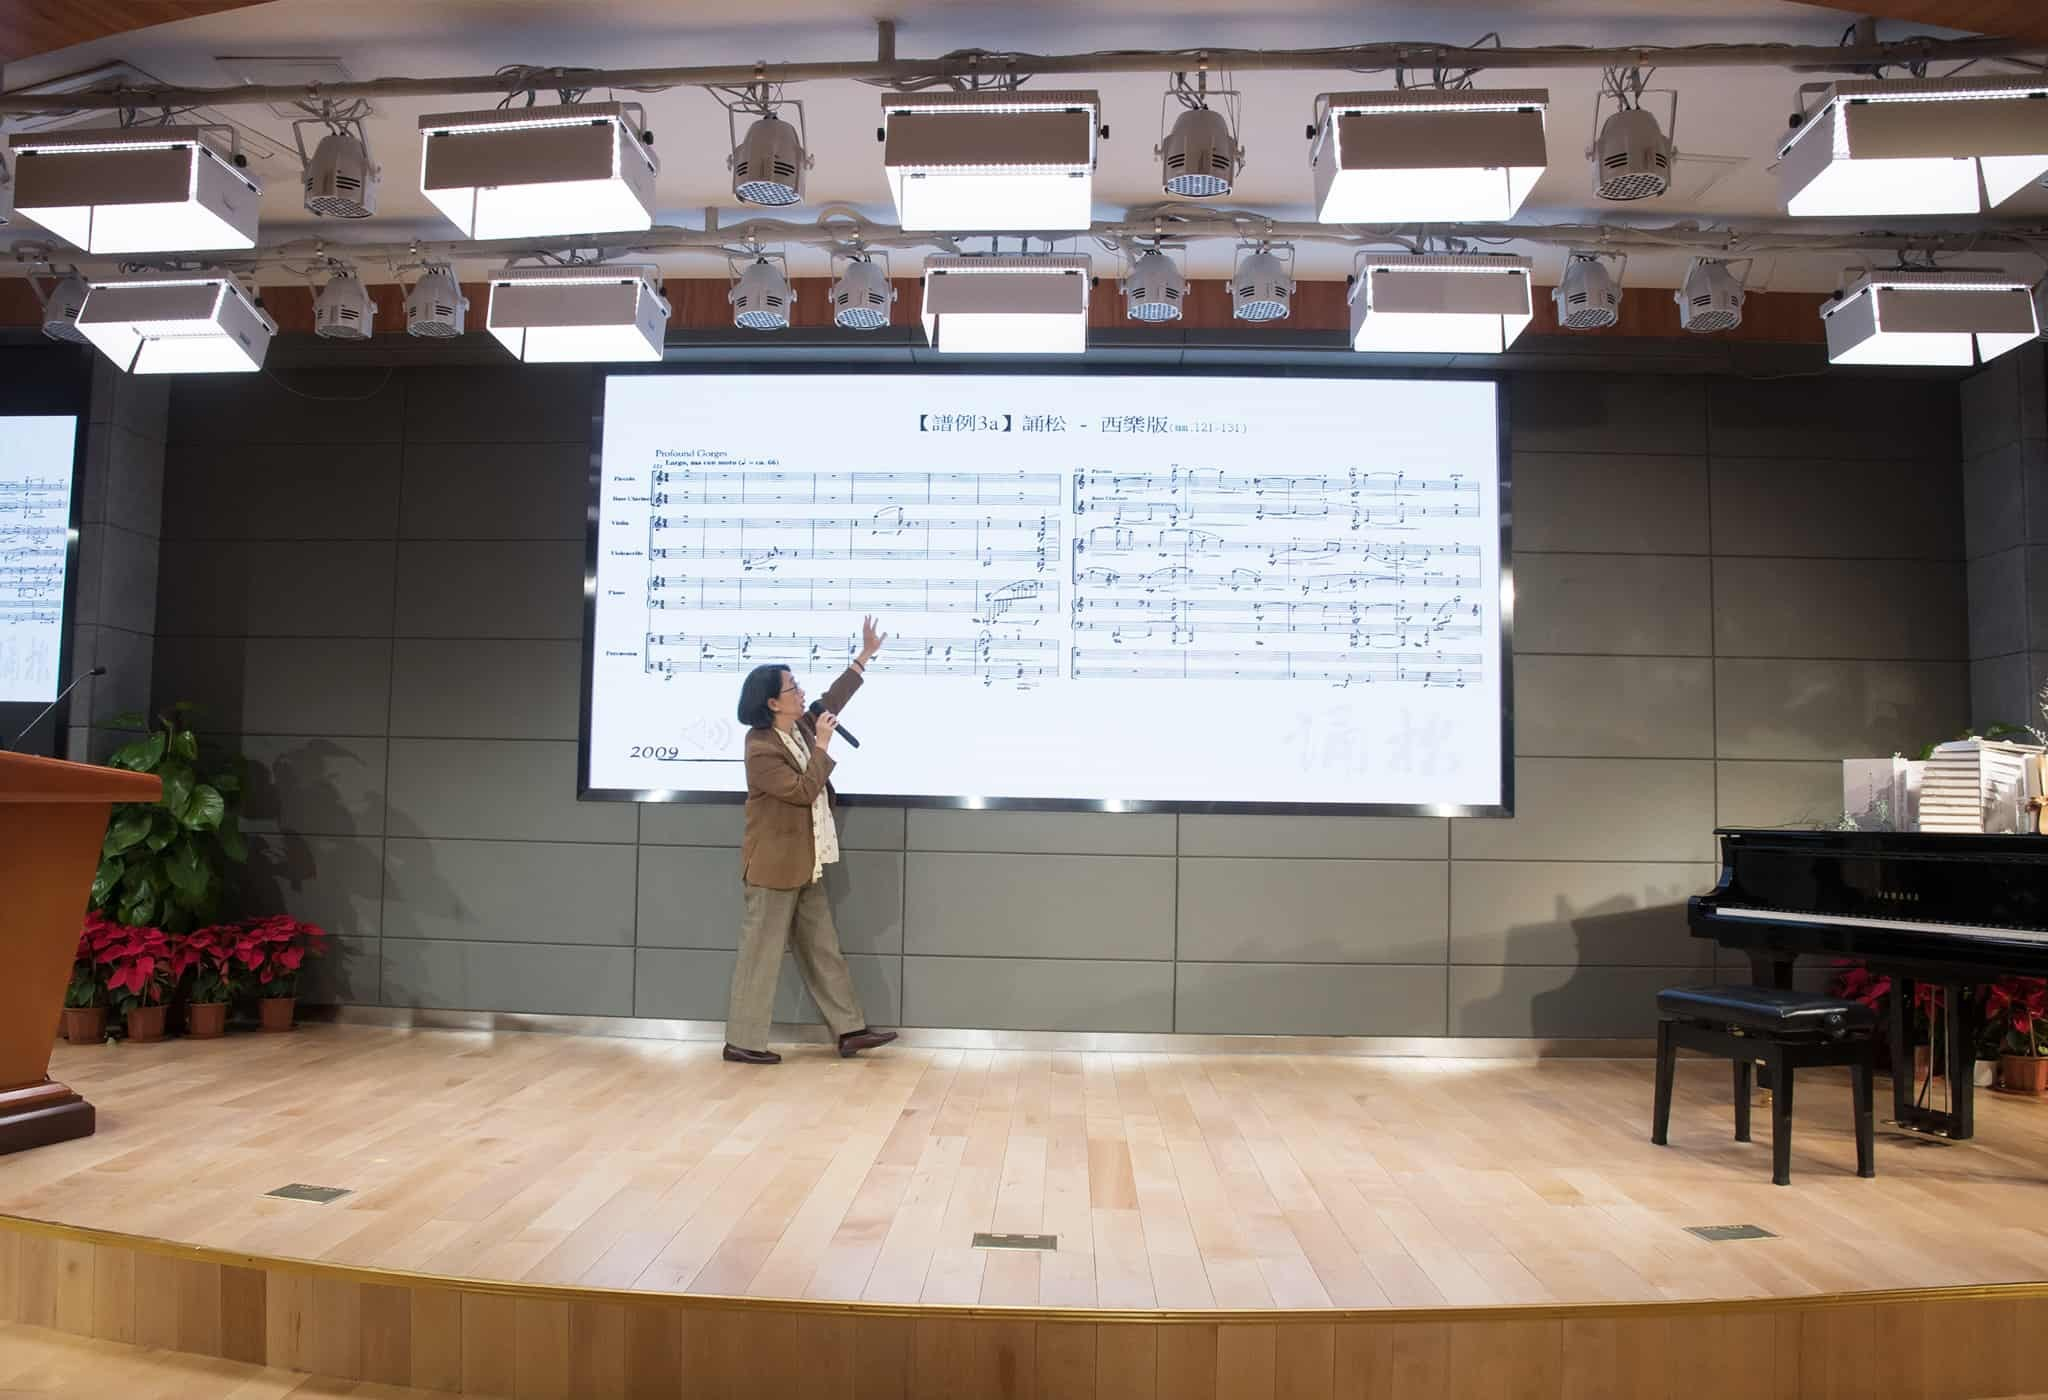 Prof. Shyhji Pan-Chew, from National Taipei University of the Arts, lecturing on Chou's music.